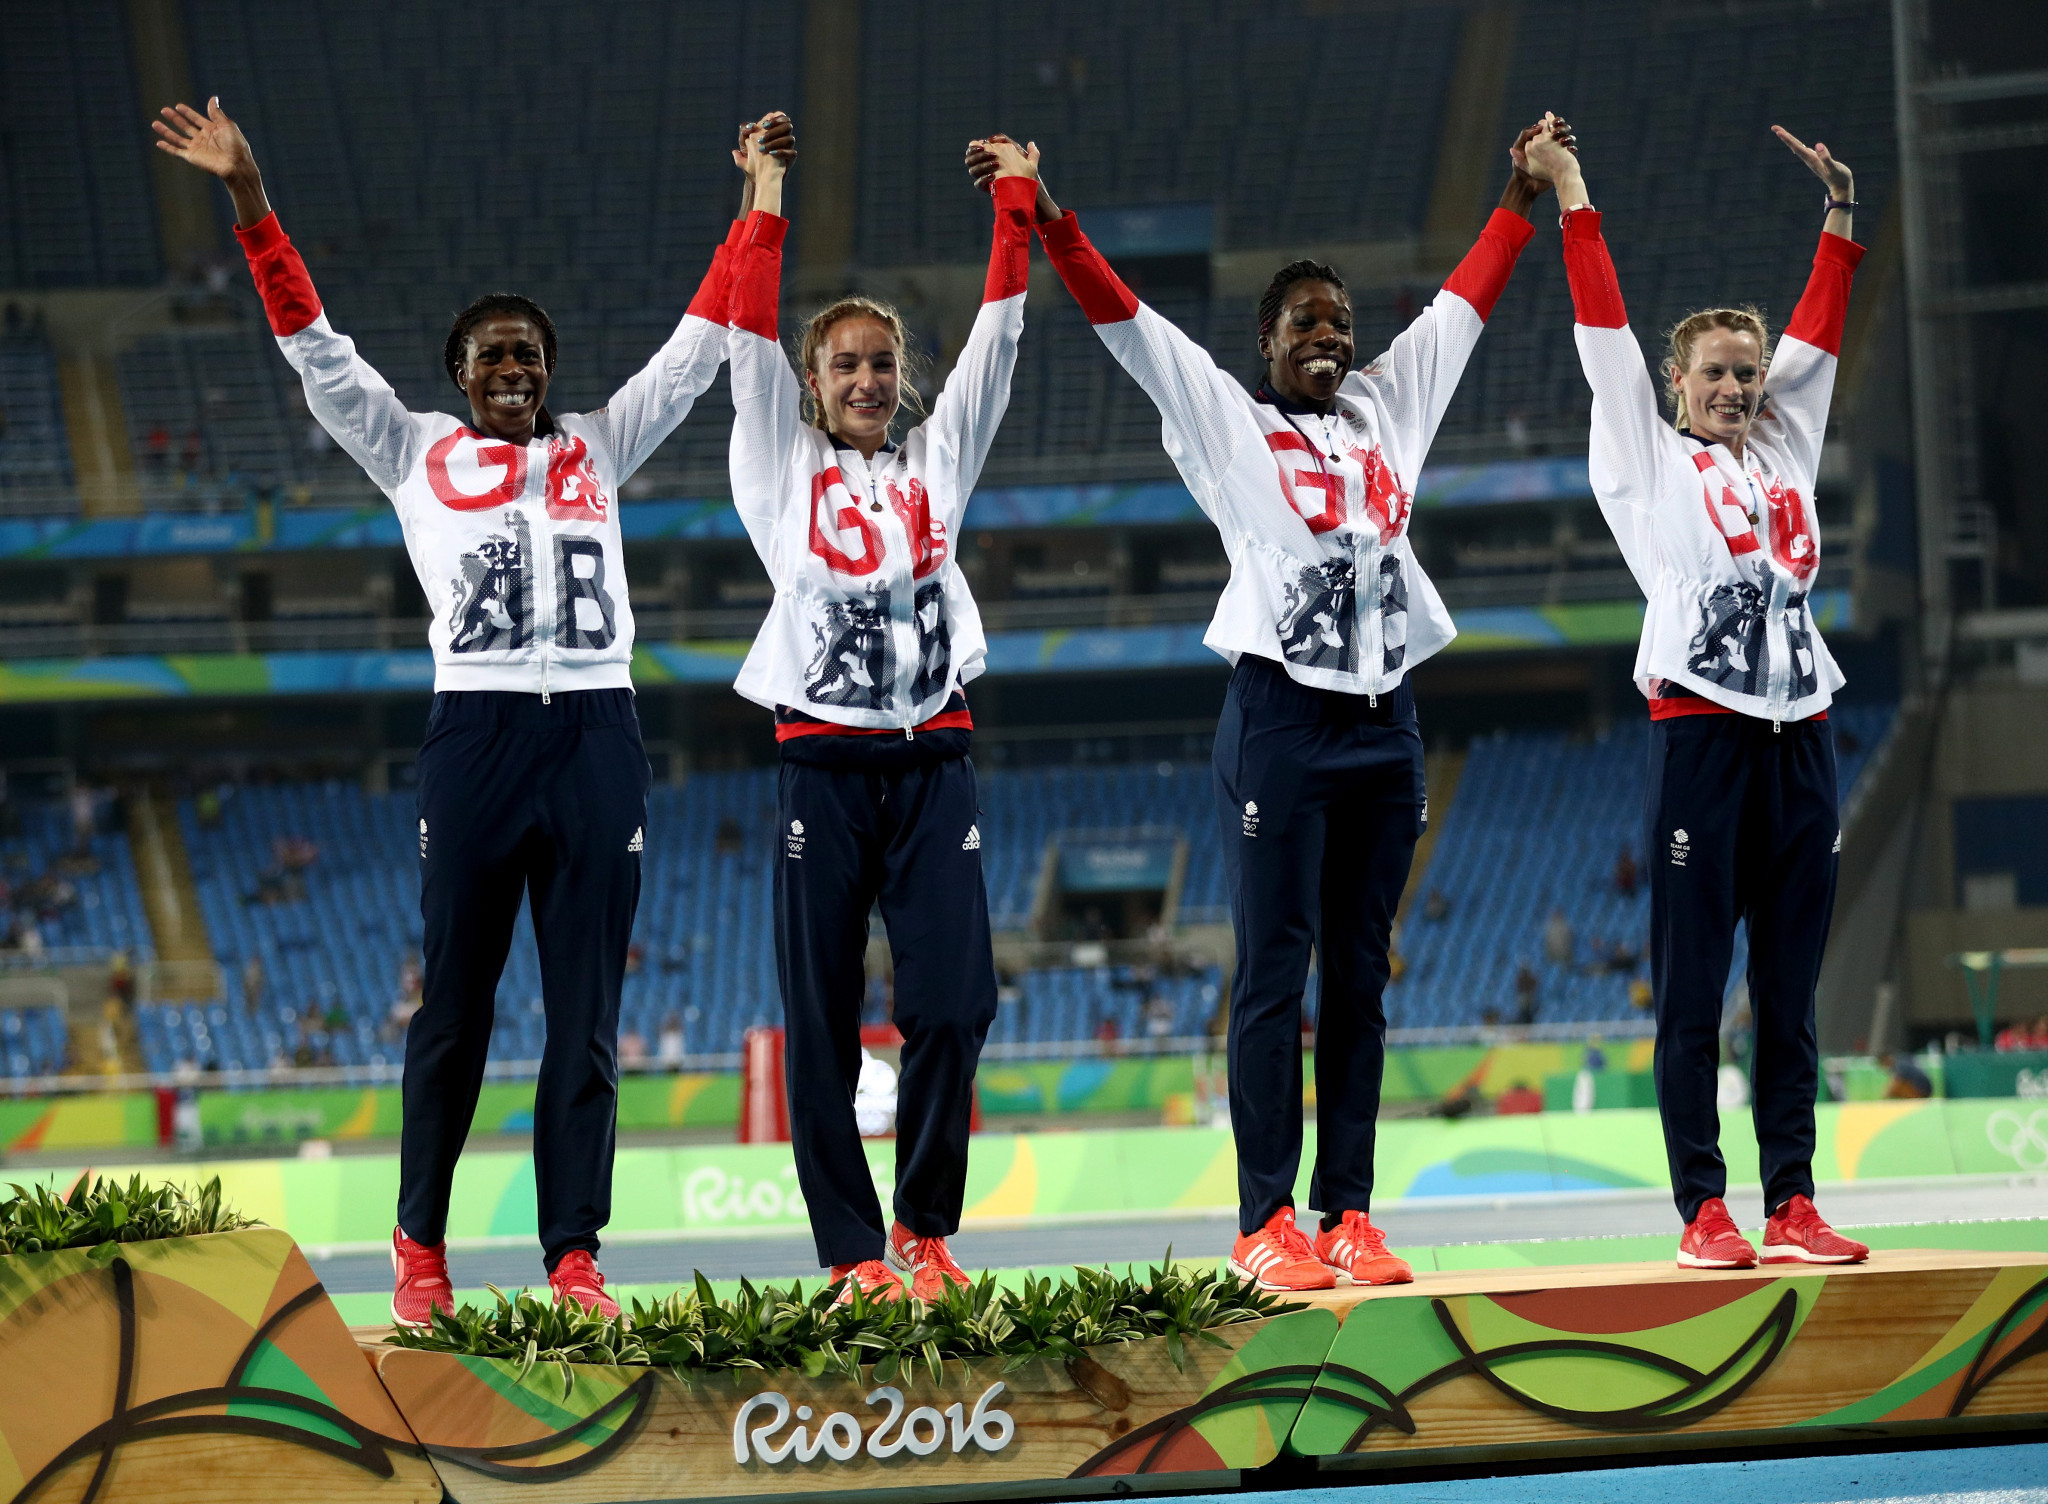 Christine Ohuruogu's last major championship medal came at the Rio 2016 Olympics when she won bronze in the 4x400m relay alongside, from left to right, Emily Diamond, Anyika Onoura and Elidh Doyle ©Getty Images